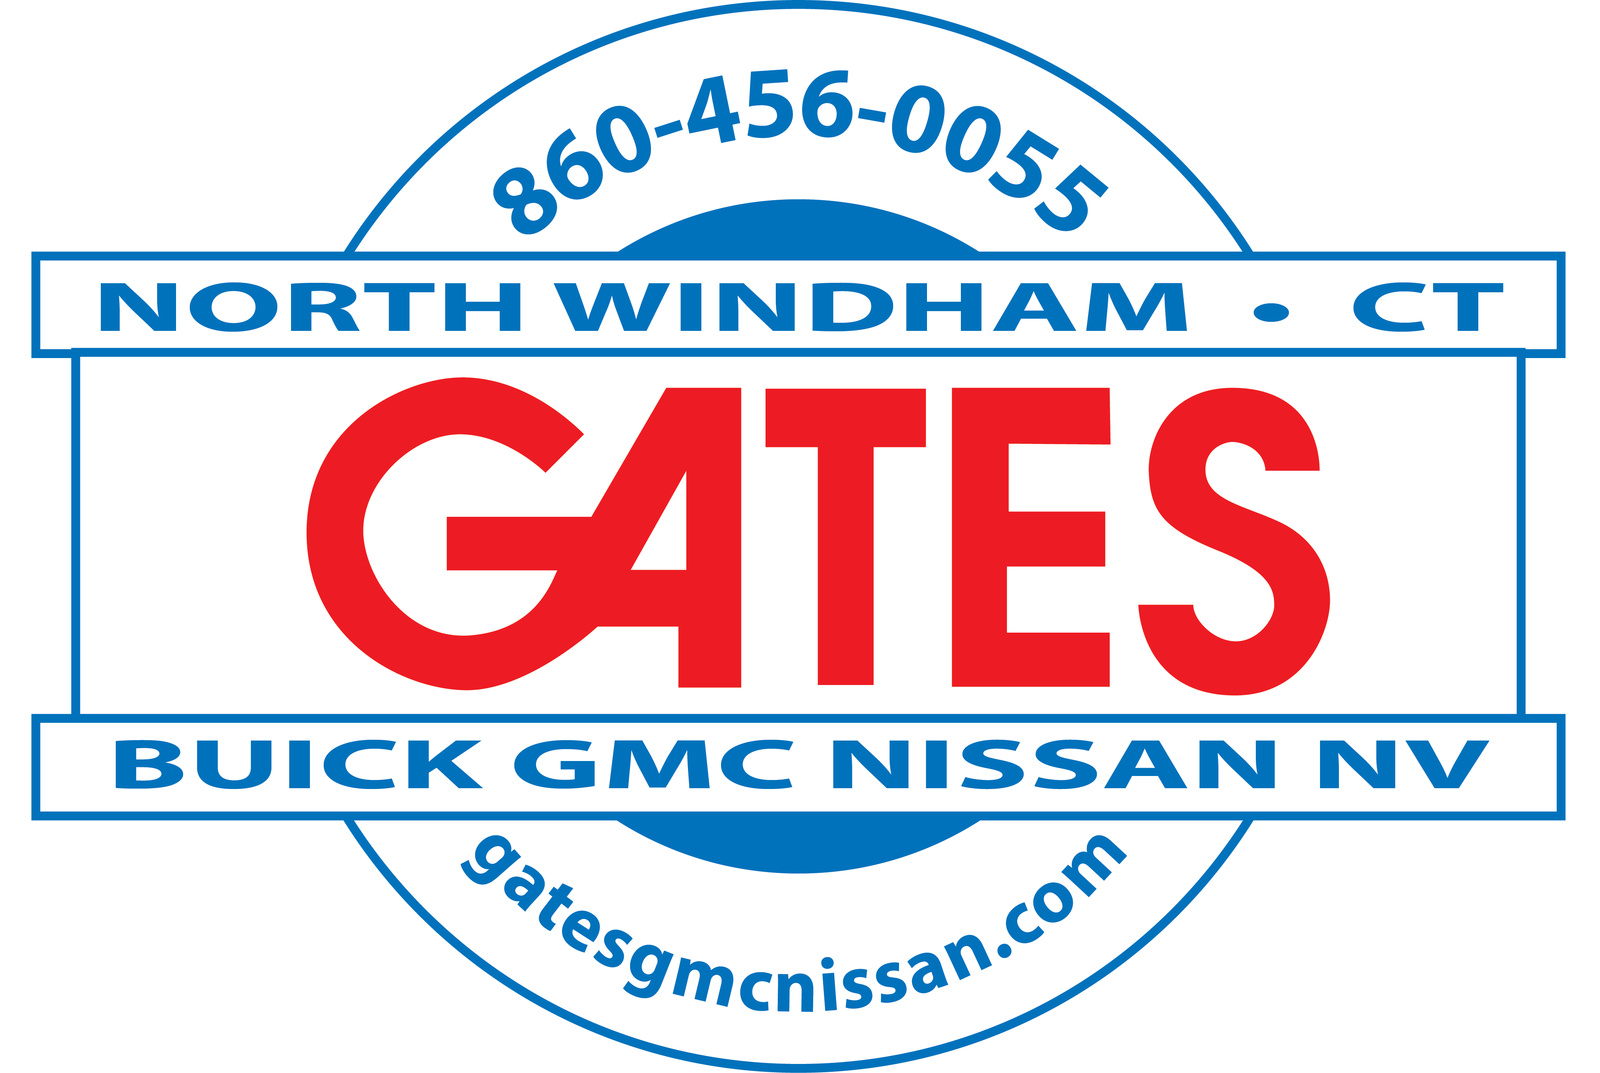 Gates Gmc Buick Nissan North Windham Ct Read Consumer Reviews Browse Used And New Cars For Sale